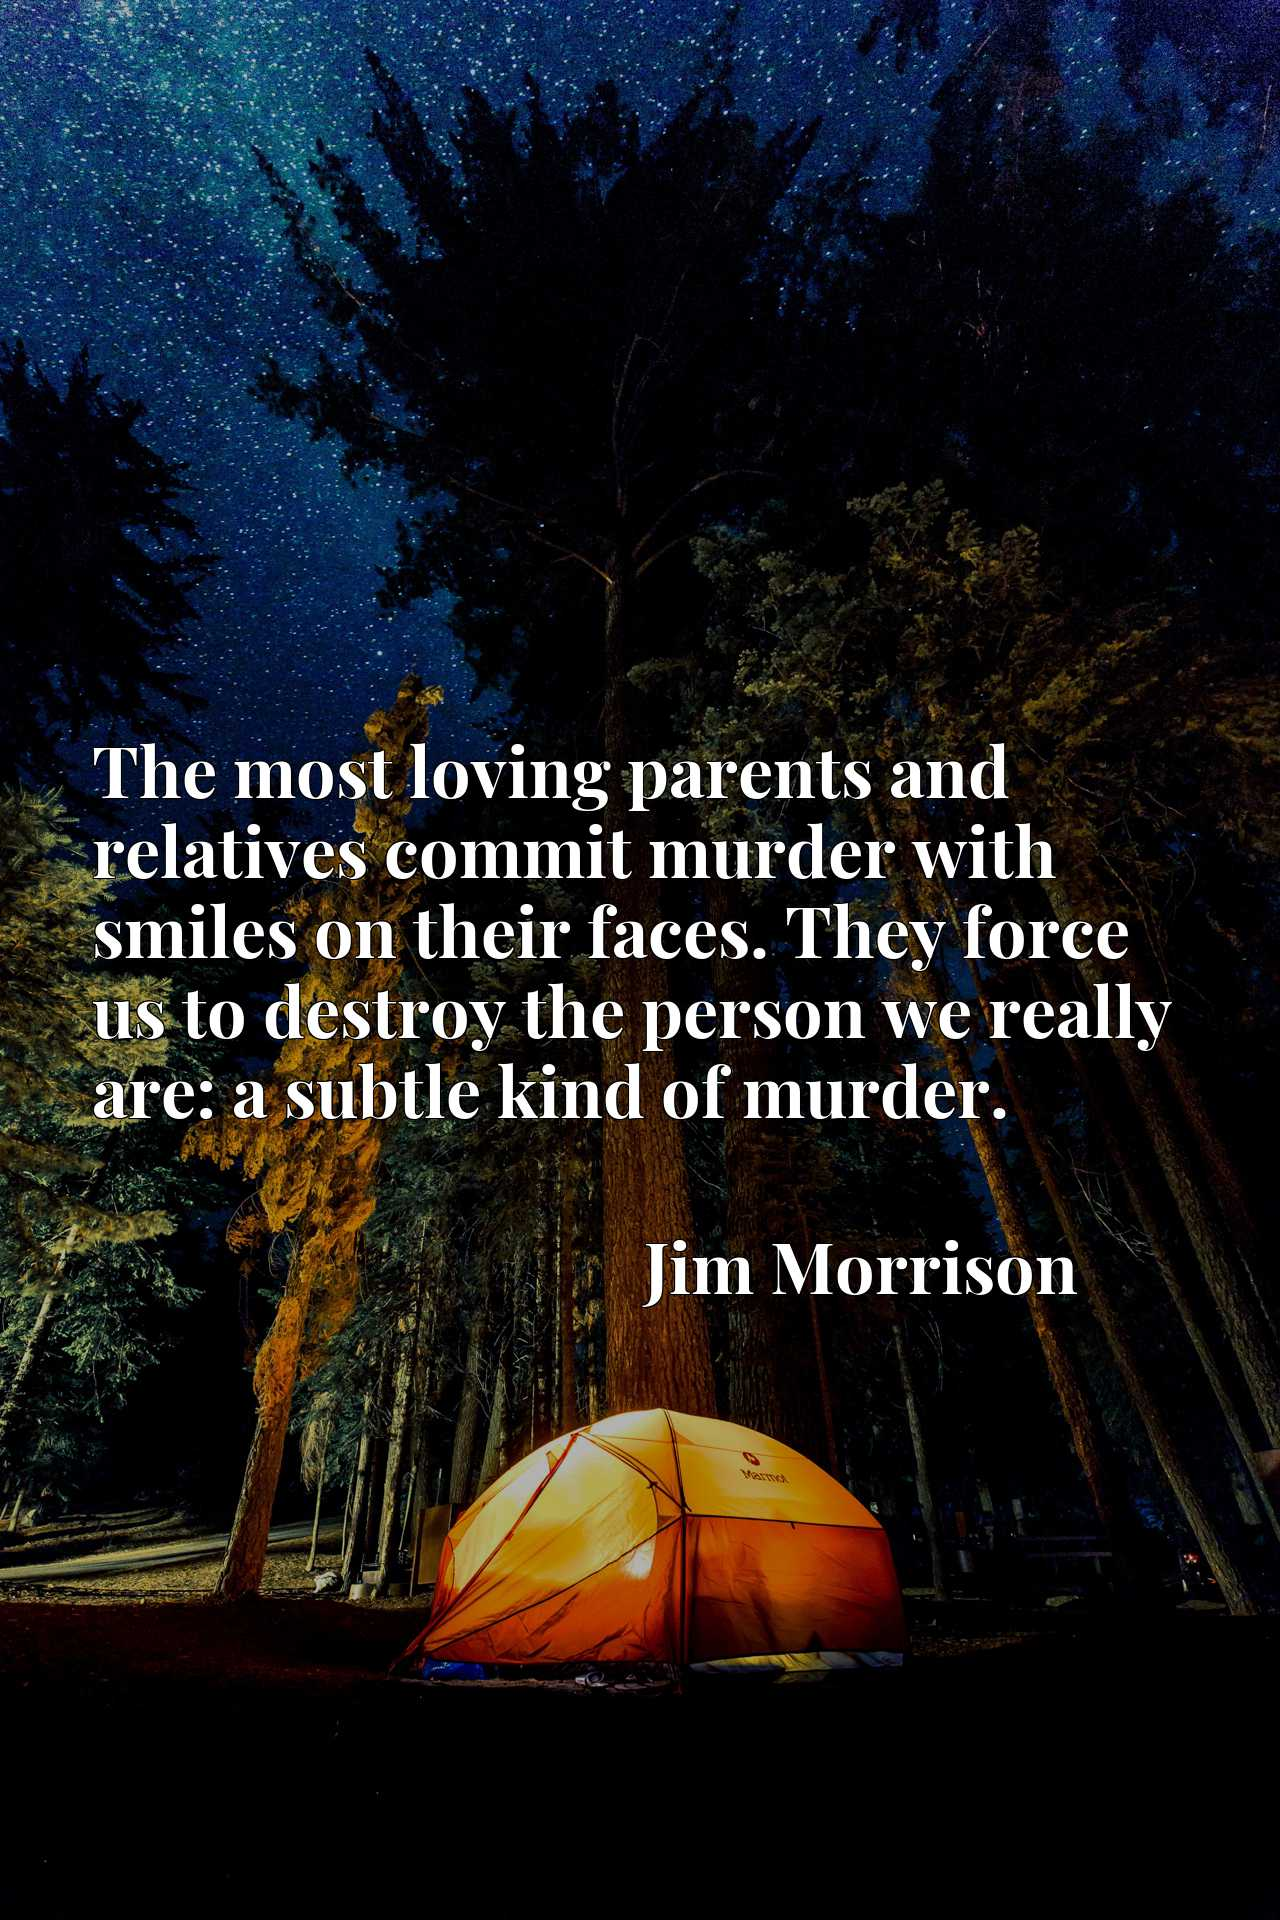 The most loving parents and relatives commit murder with smiles on their faces. They force us to destroy the person we really are: a subtle kind of murder.